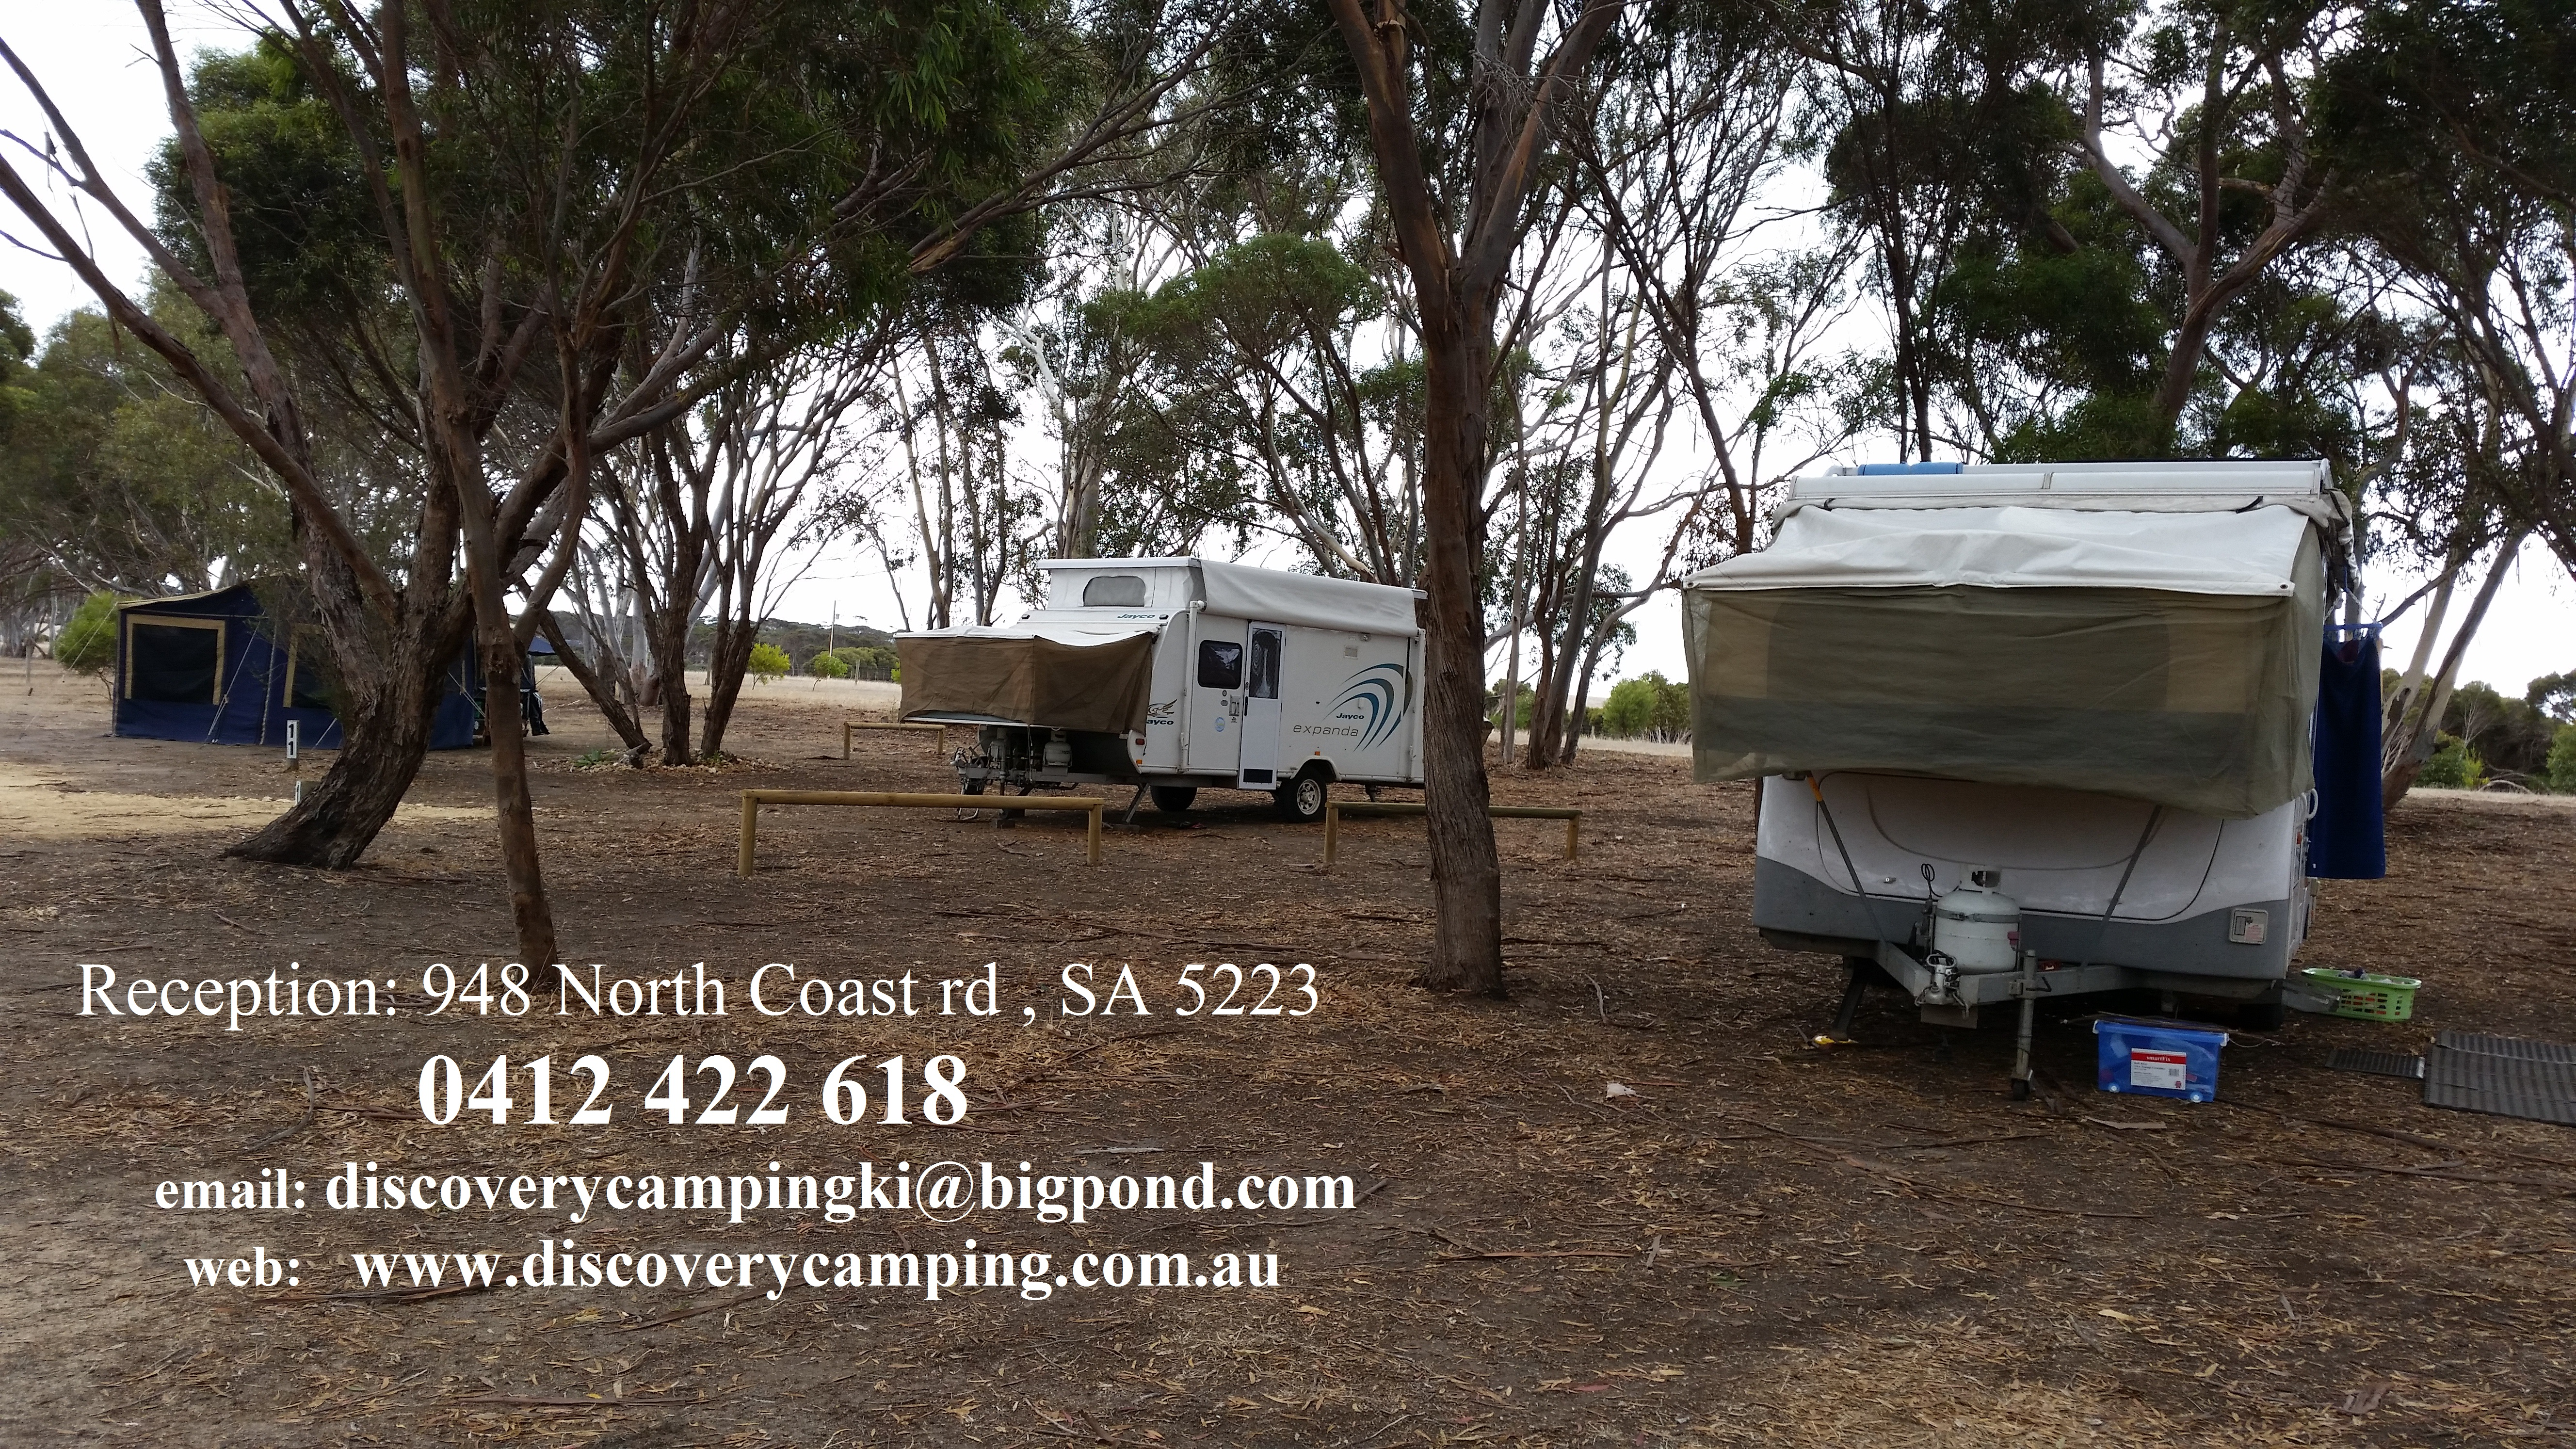 Discovery Lagoon  Caravan  Camping Grounds - Accommodation Find